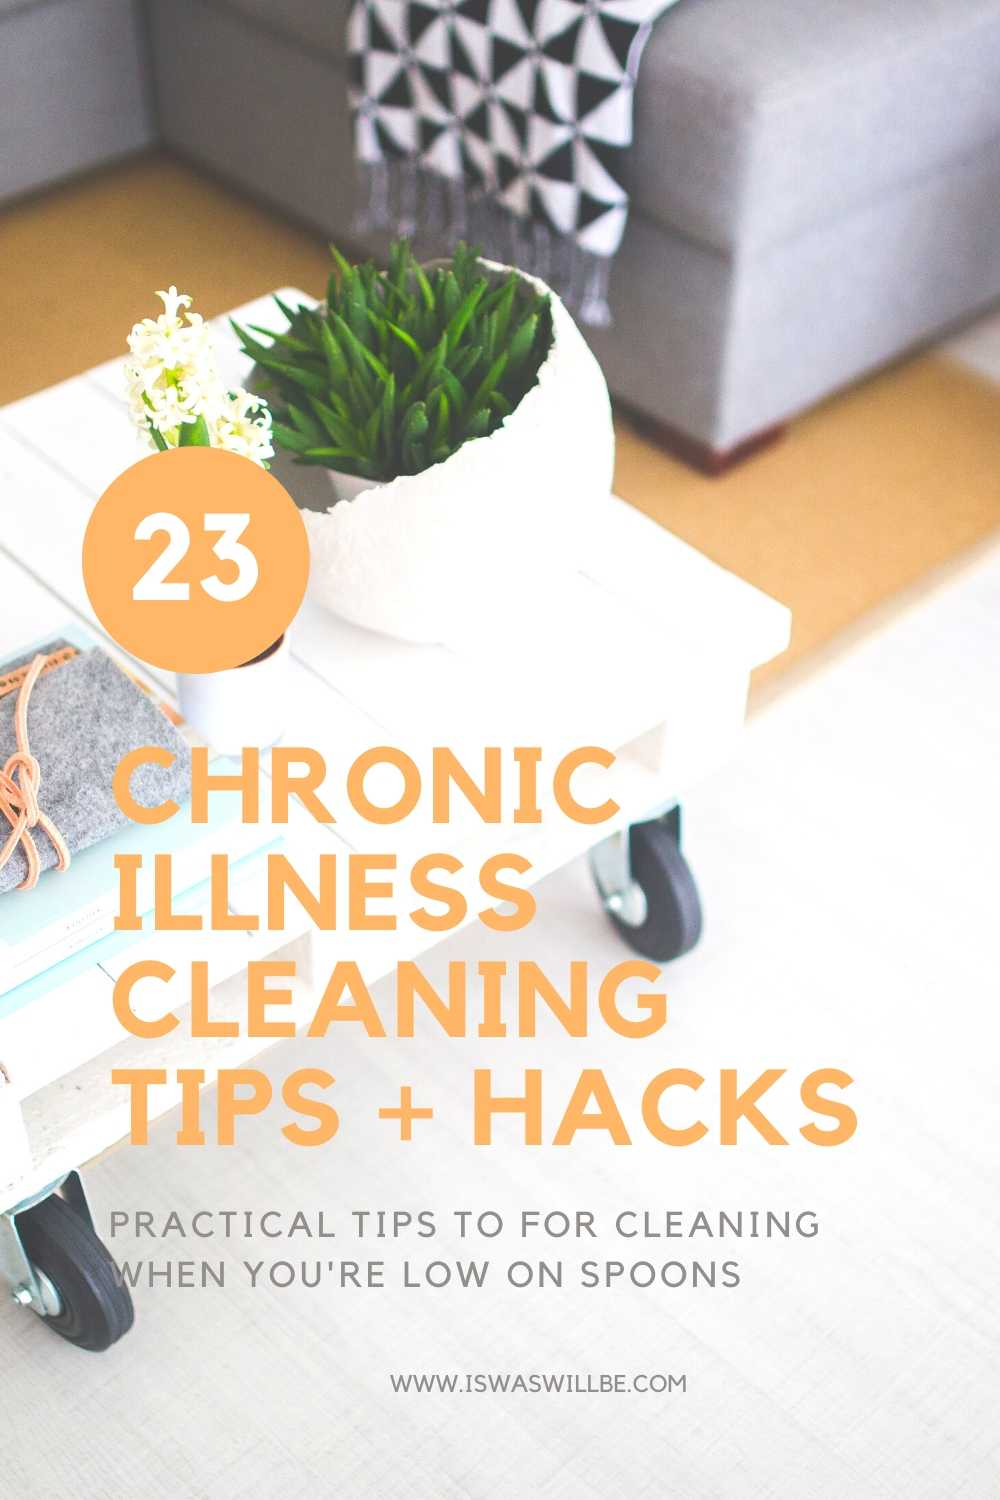 Chronic Illness Cleaning Tips